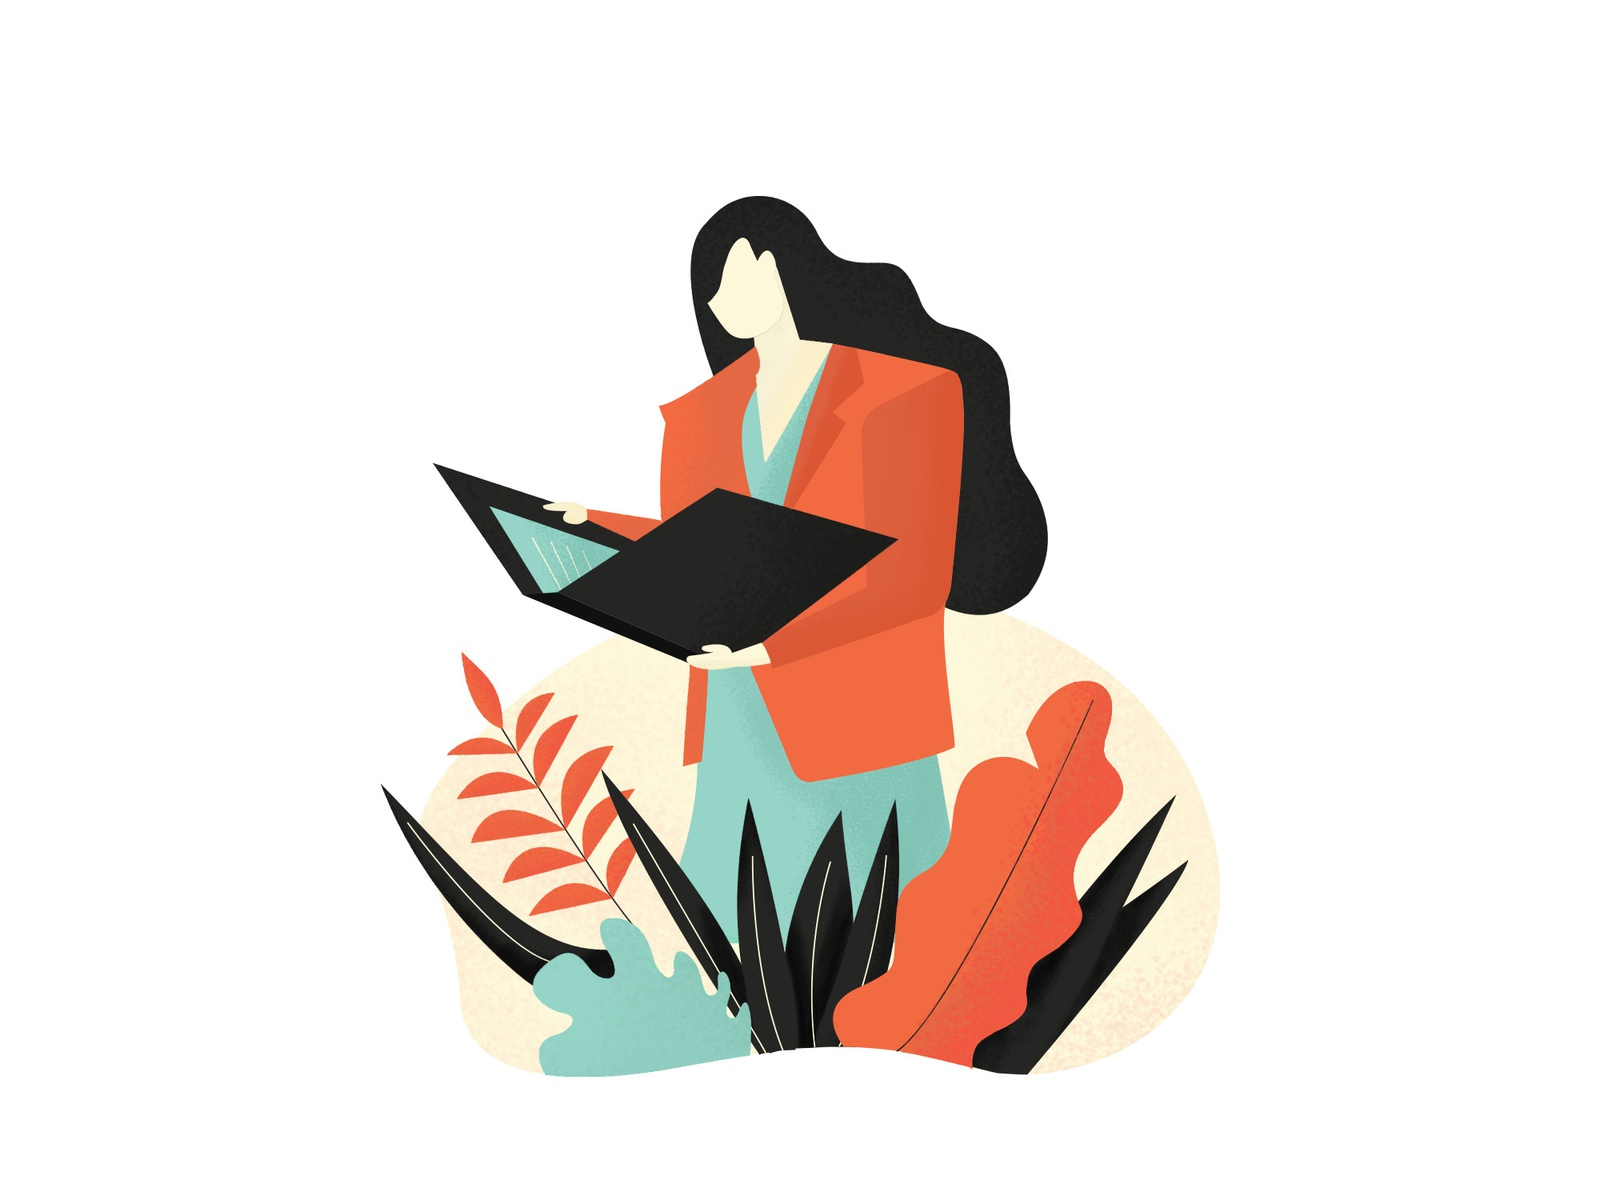 Flat illustration of a girl reading by Vaishnave Senthil